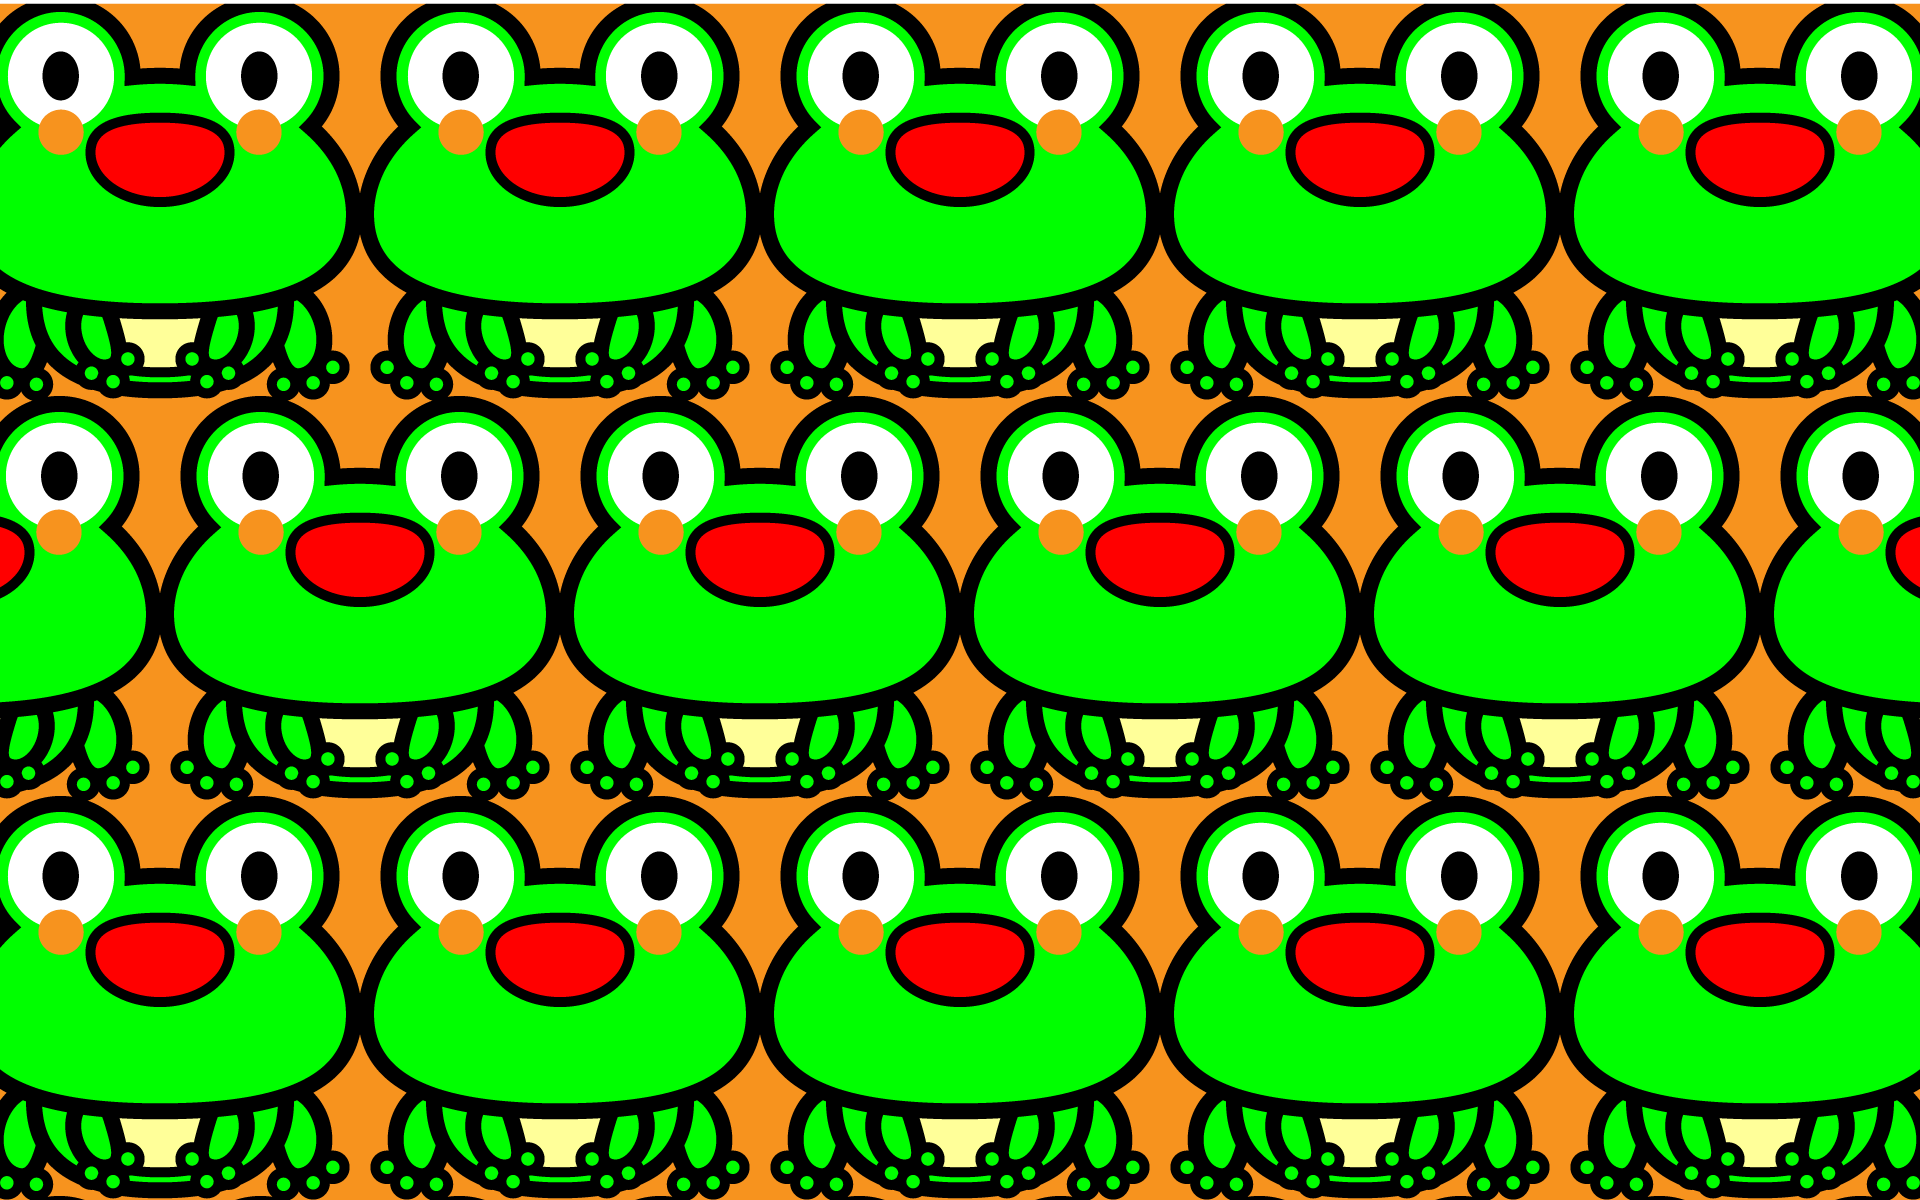 wallpaper1_sitfrog-fiill-orange-pc